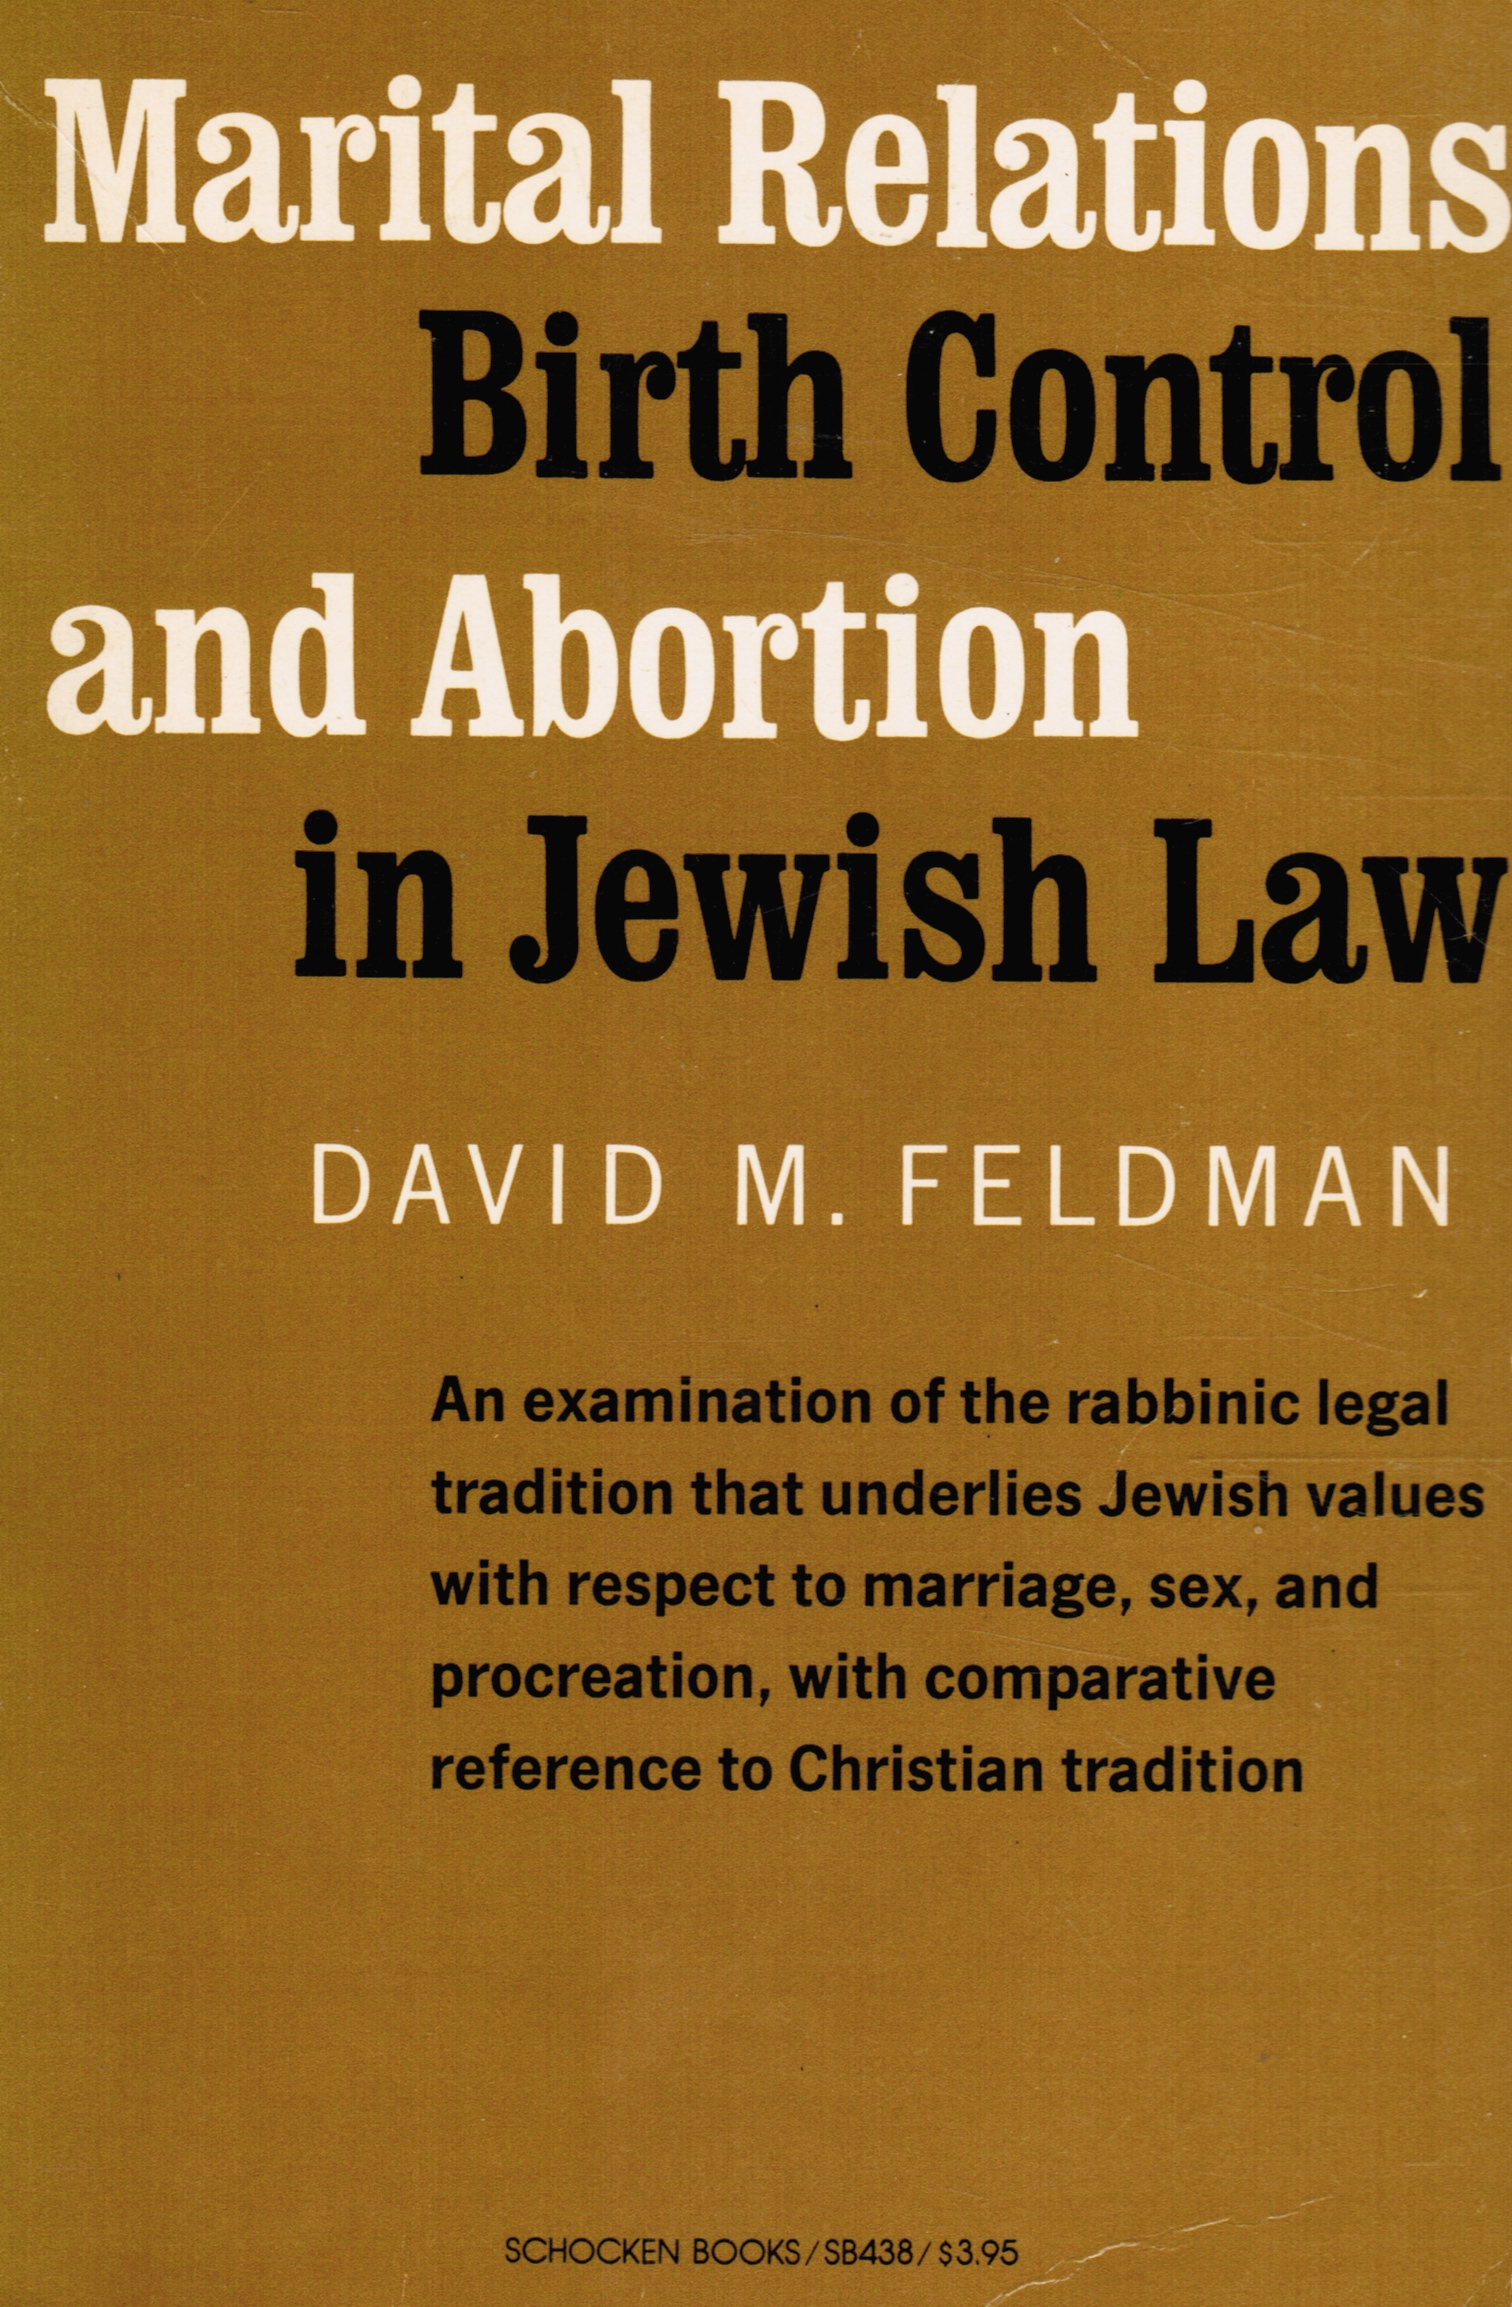 Image for Marital Relations, Birth Control, and Abortion in Jewish Law